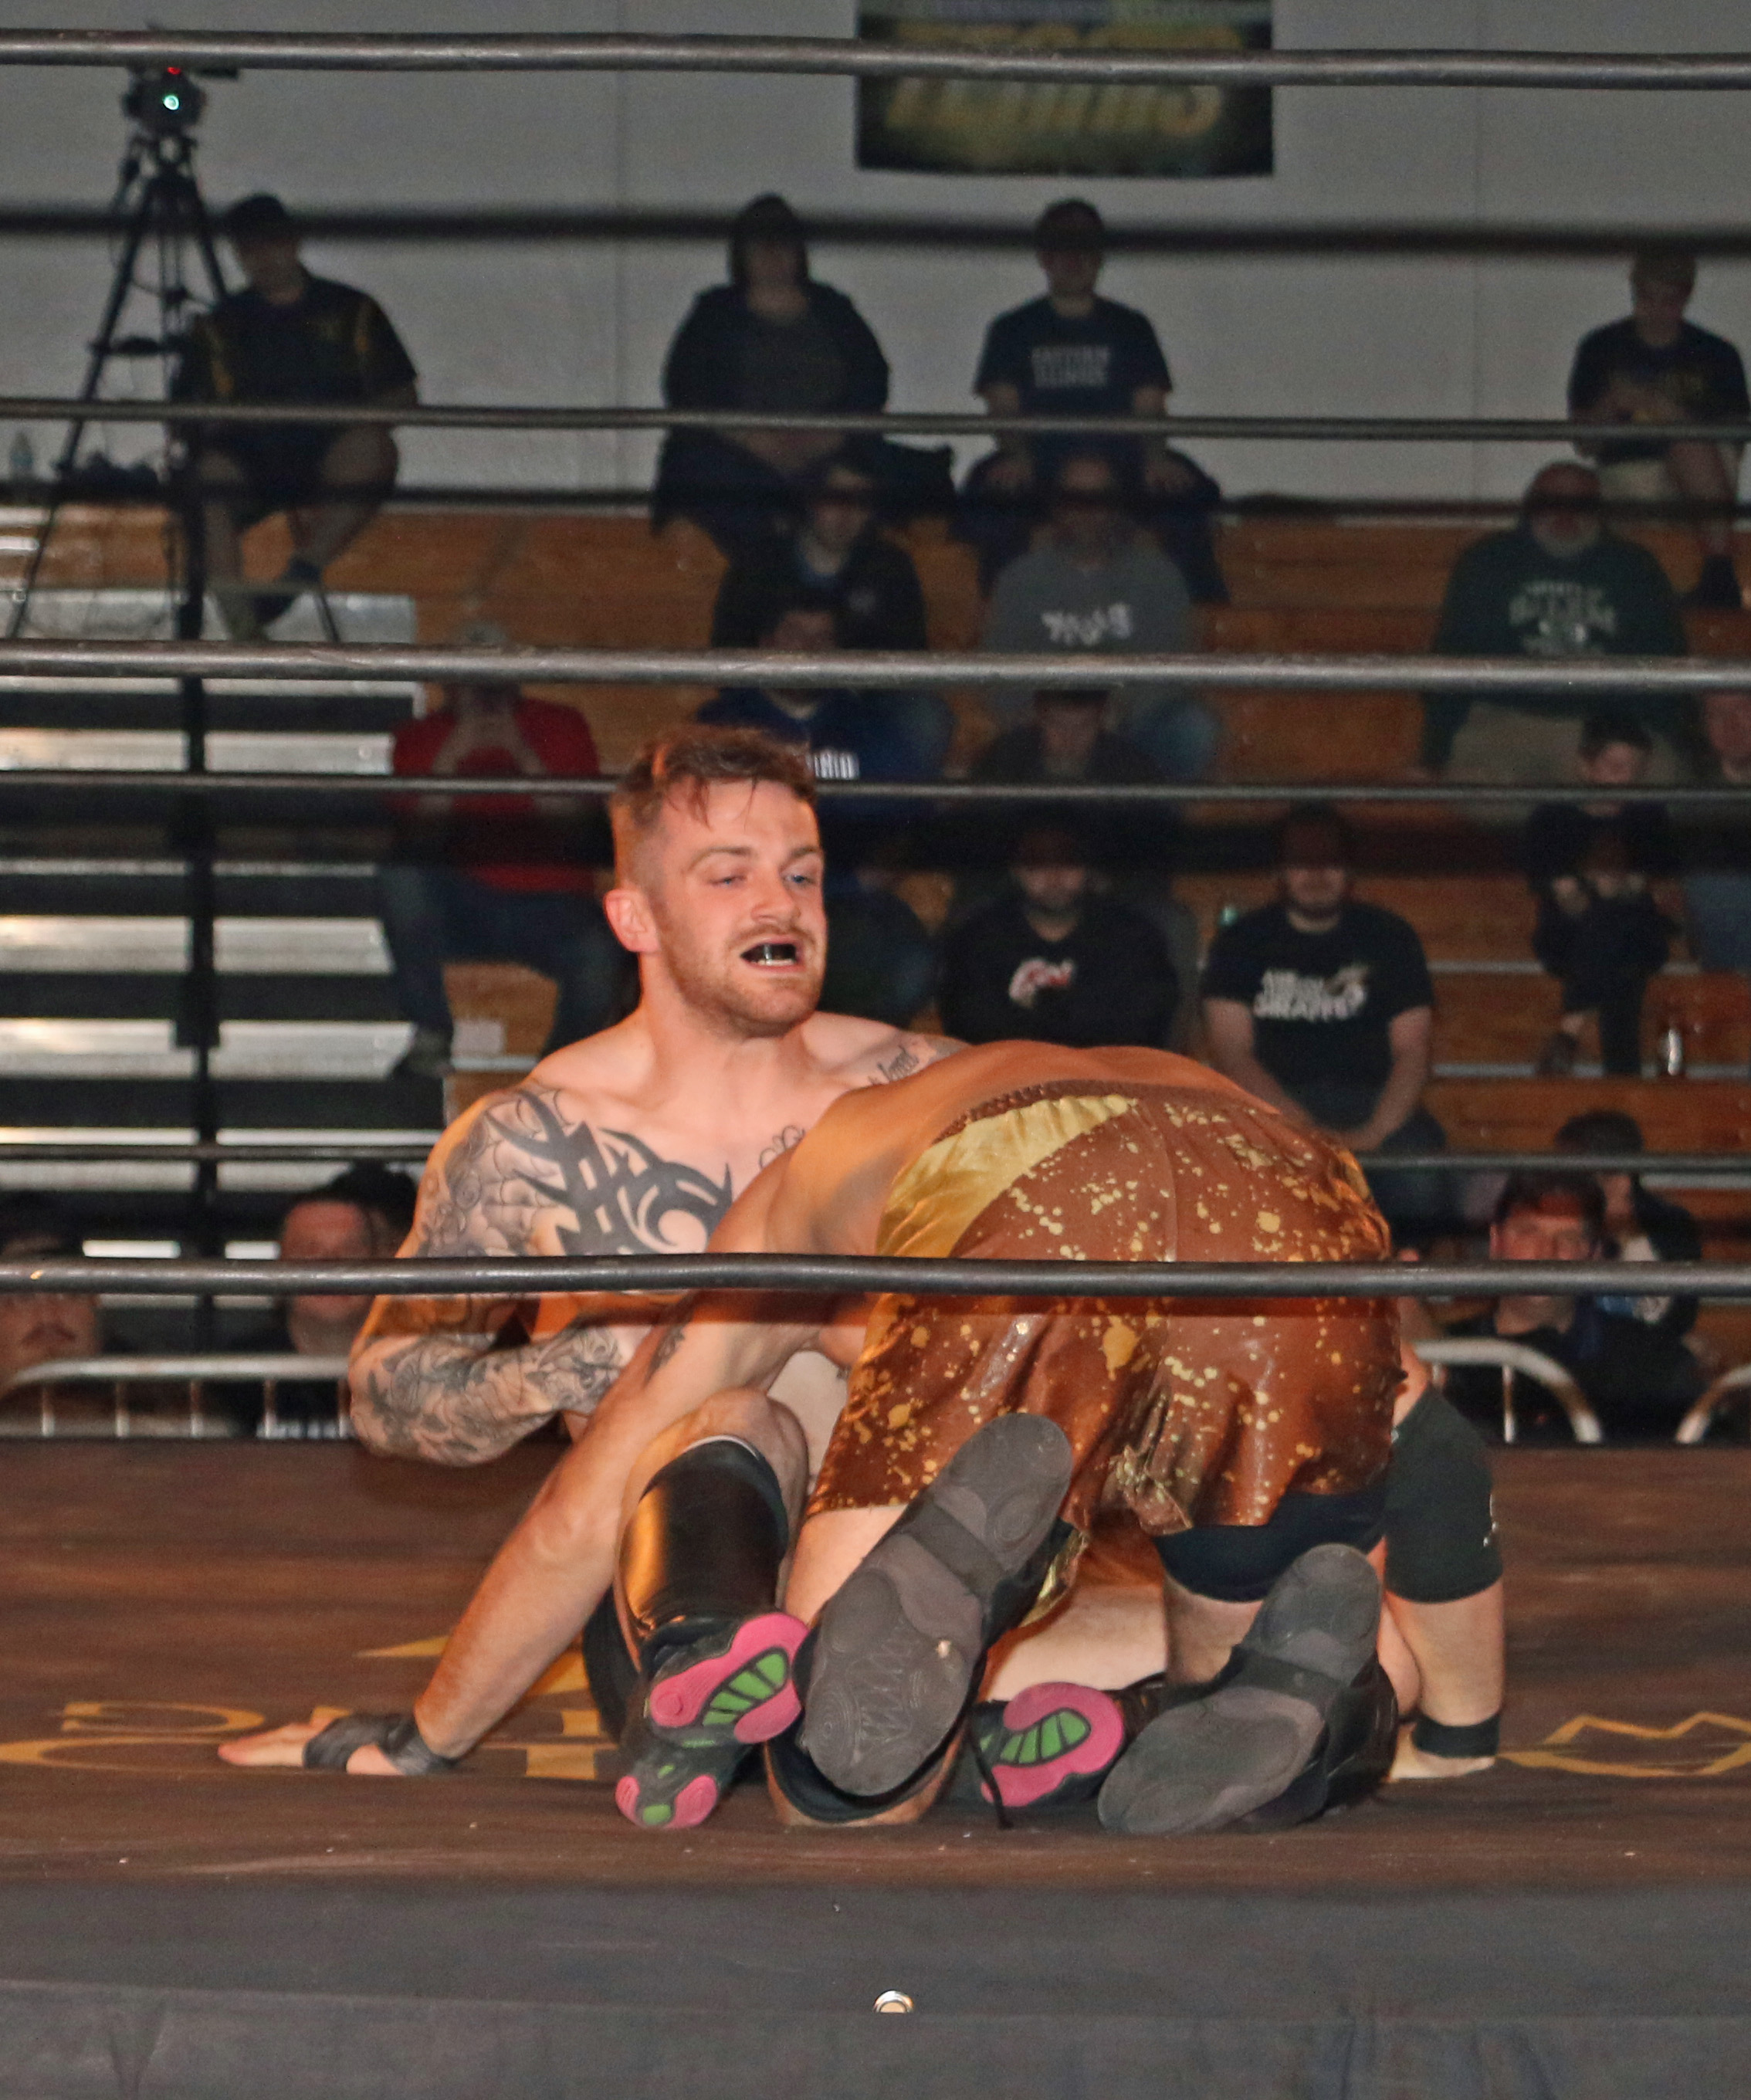 Chris Ridgeway controls Tom Lawlor in a match filled with submission holds and strong-style strikes.